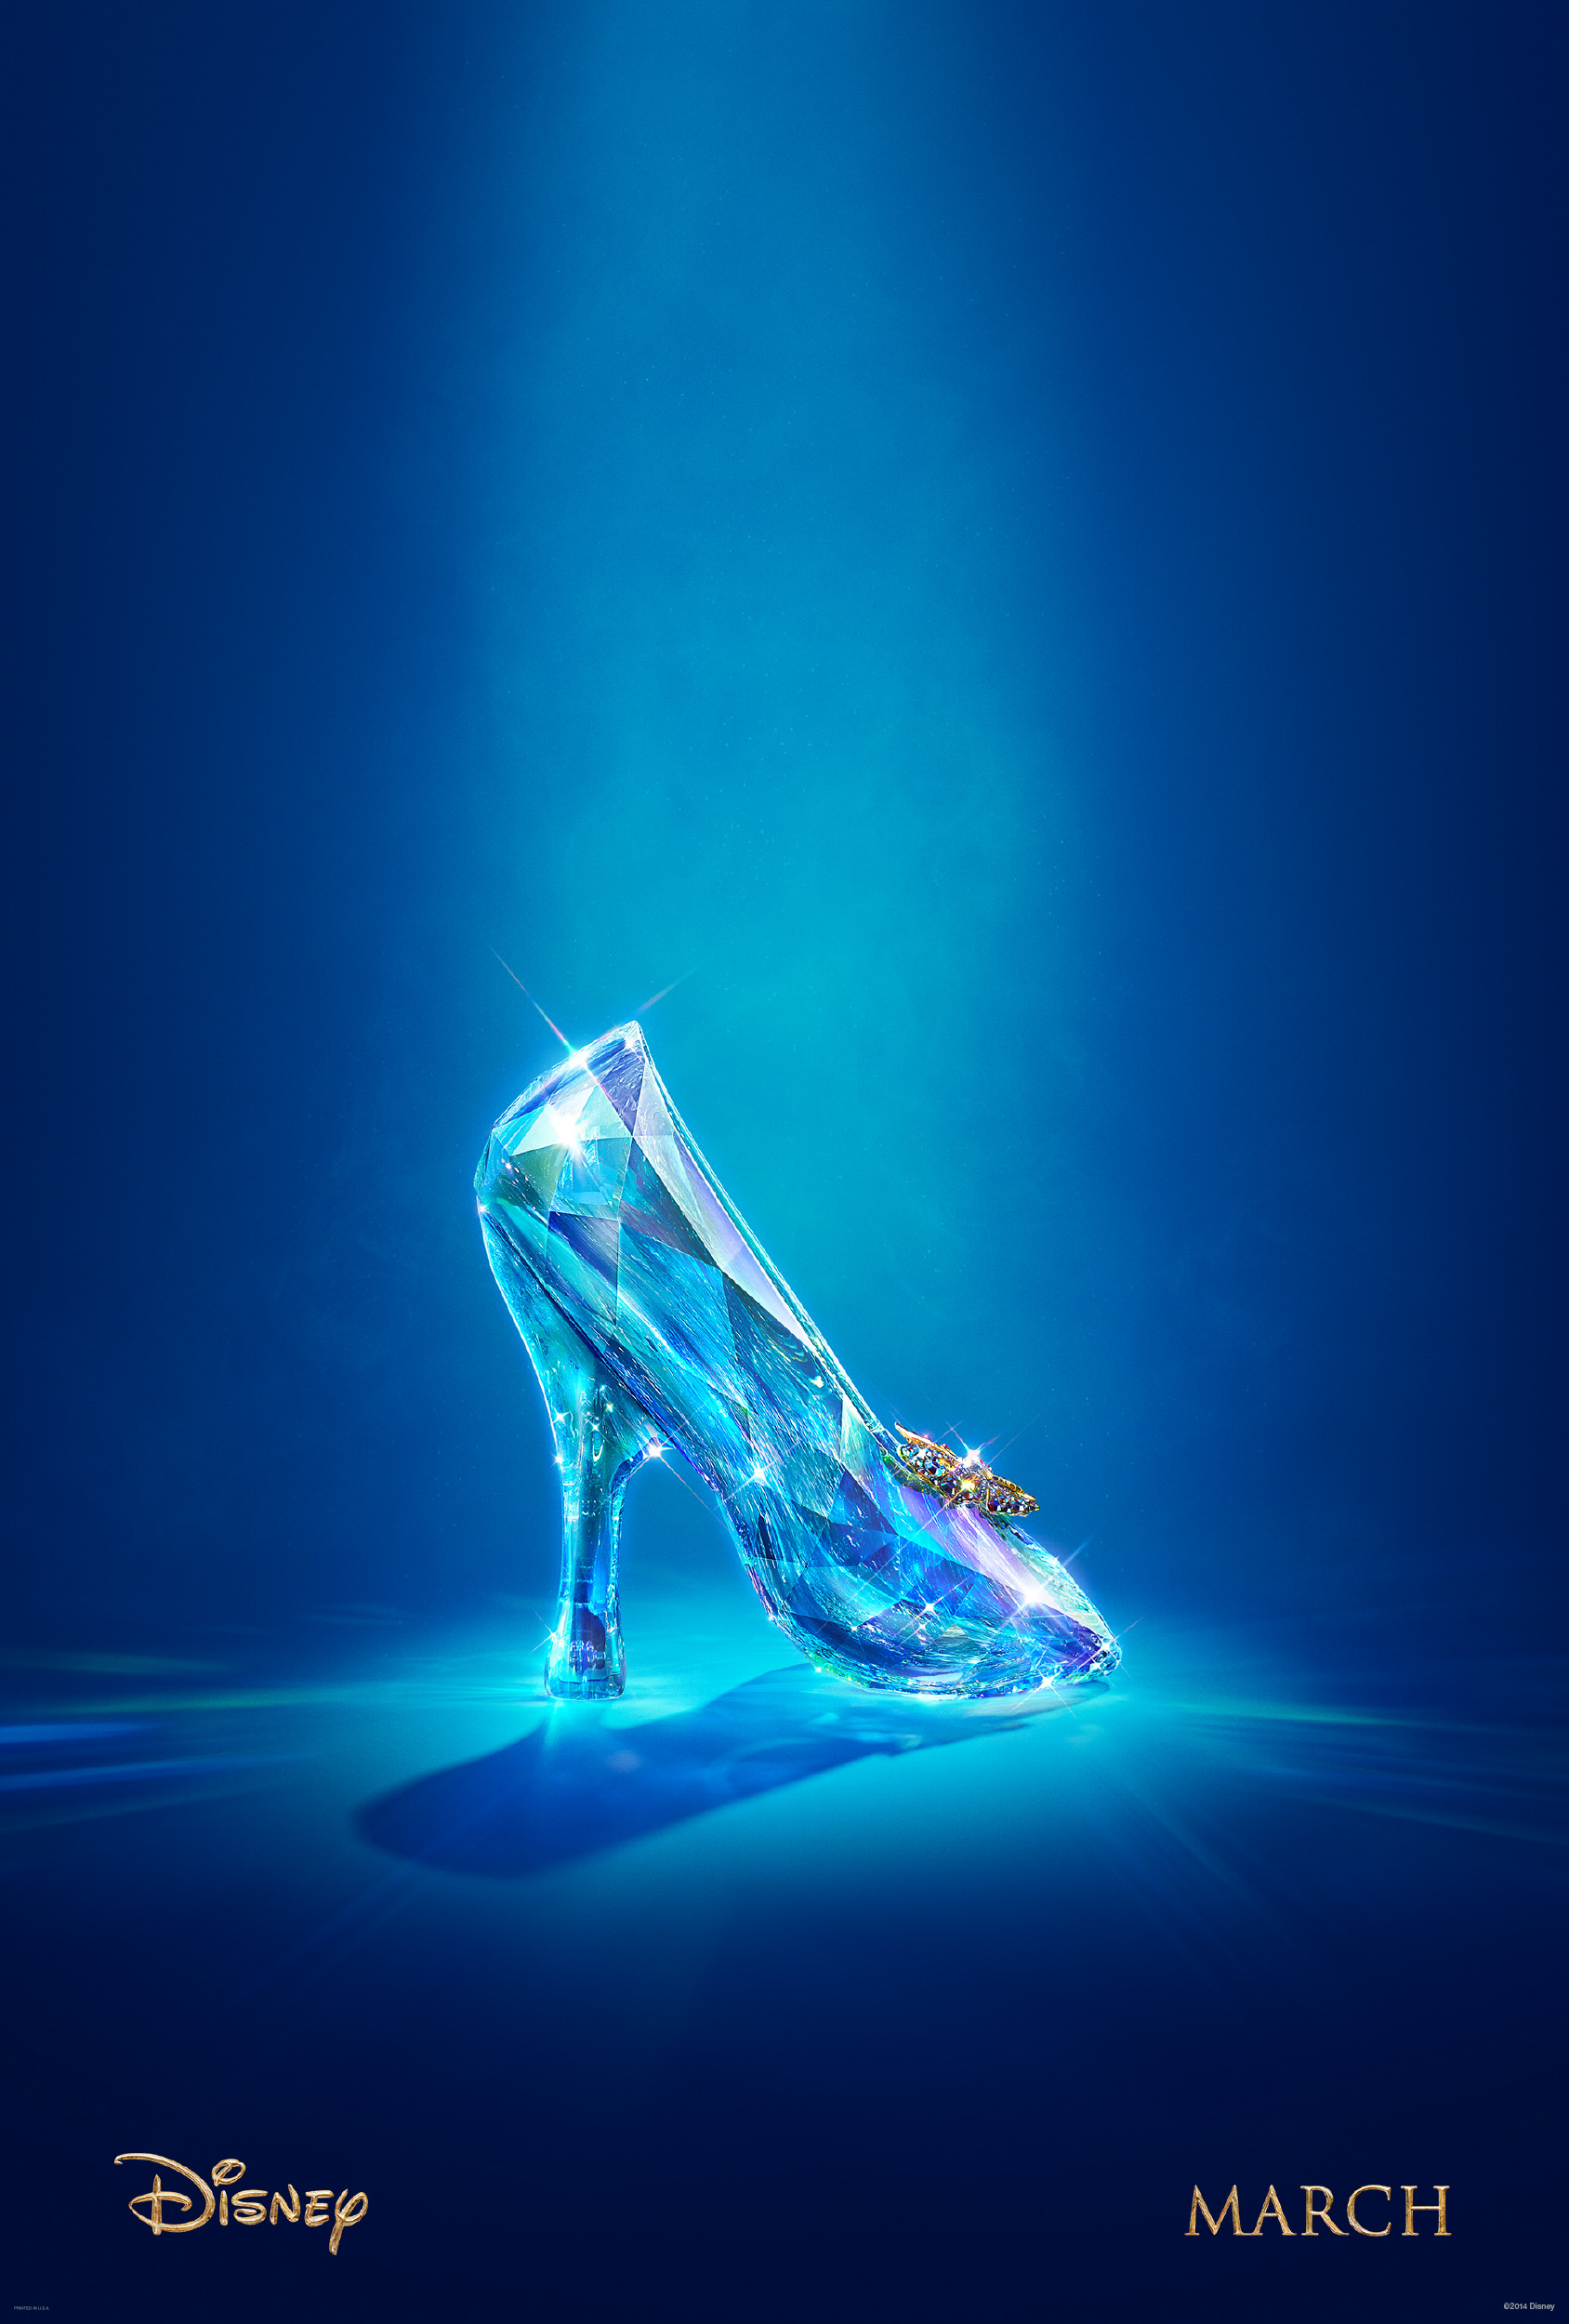 Cinderella Disney Live-Action 2015 Movie